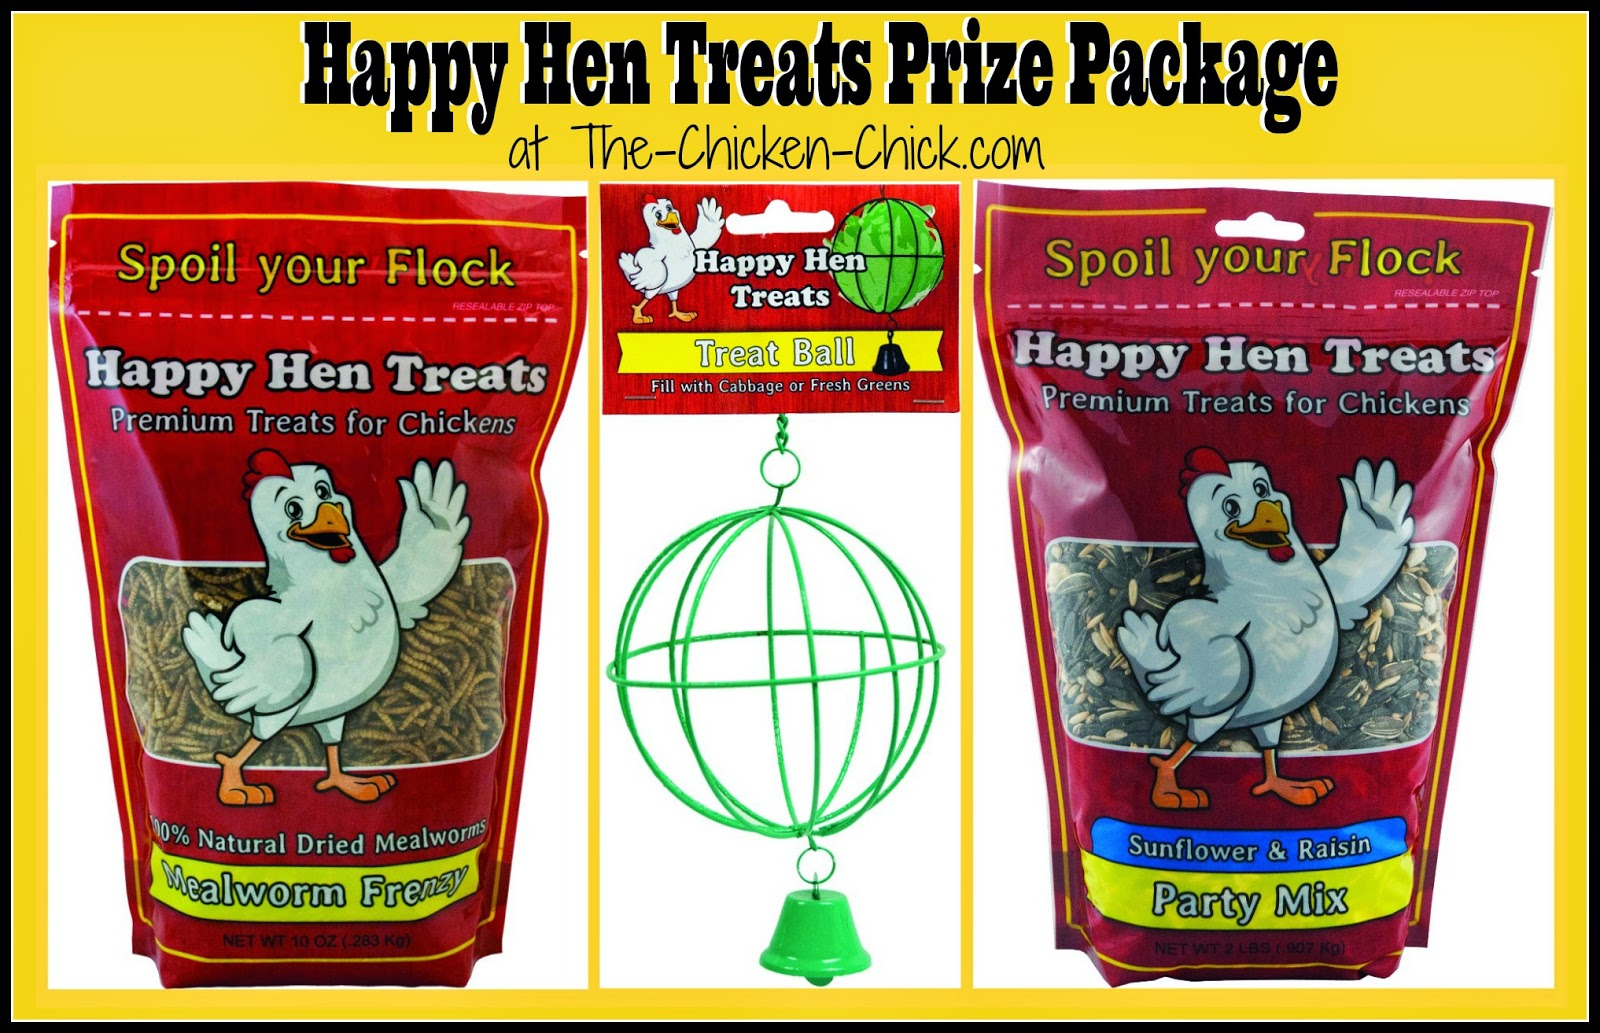 Happy Hen Treats and The Chicken Chick celebrate National Poultry Day March 19th with a Giveaway-palooza